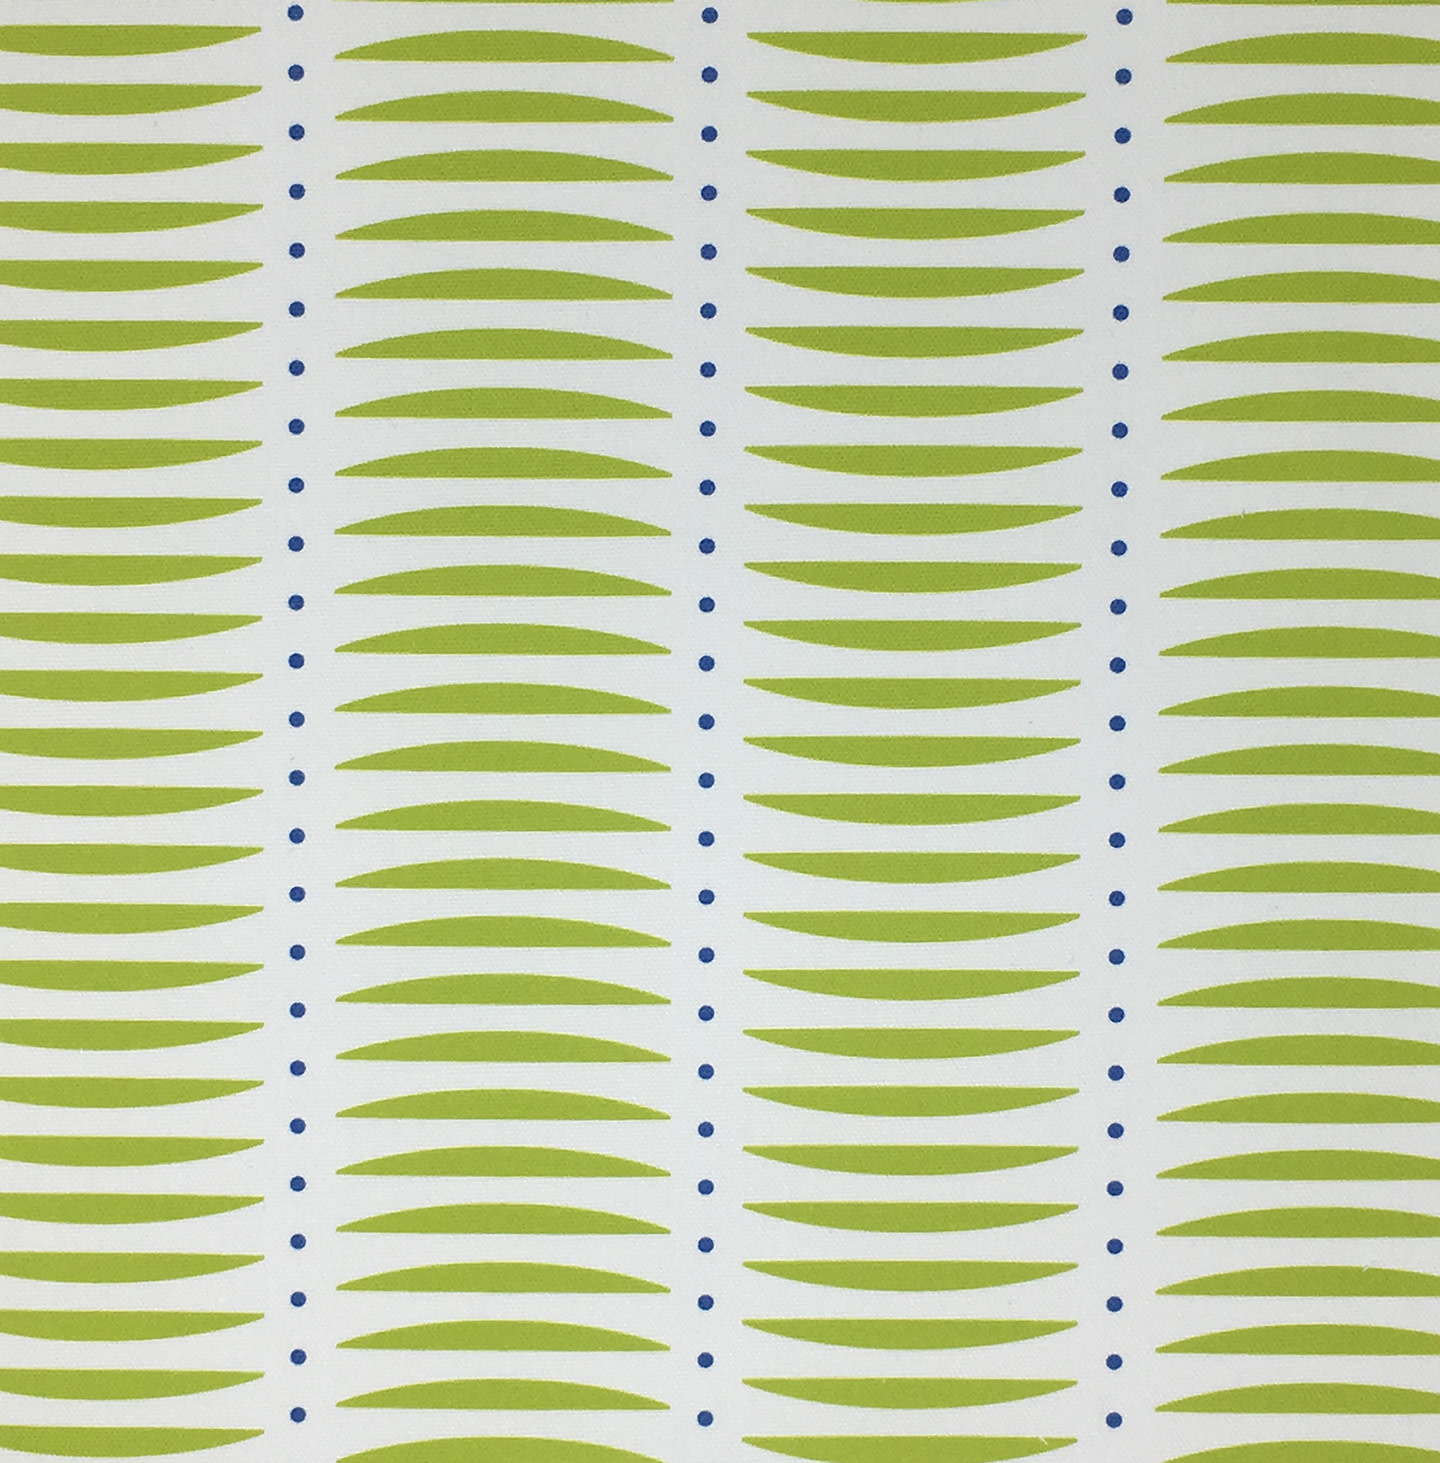 Sara Ladds Swoop Fabric